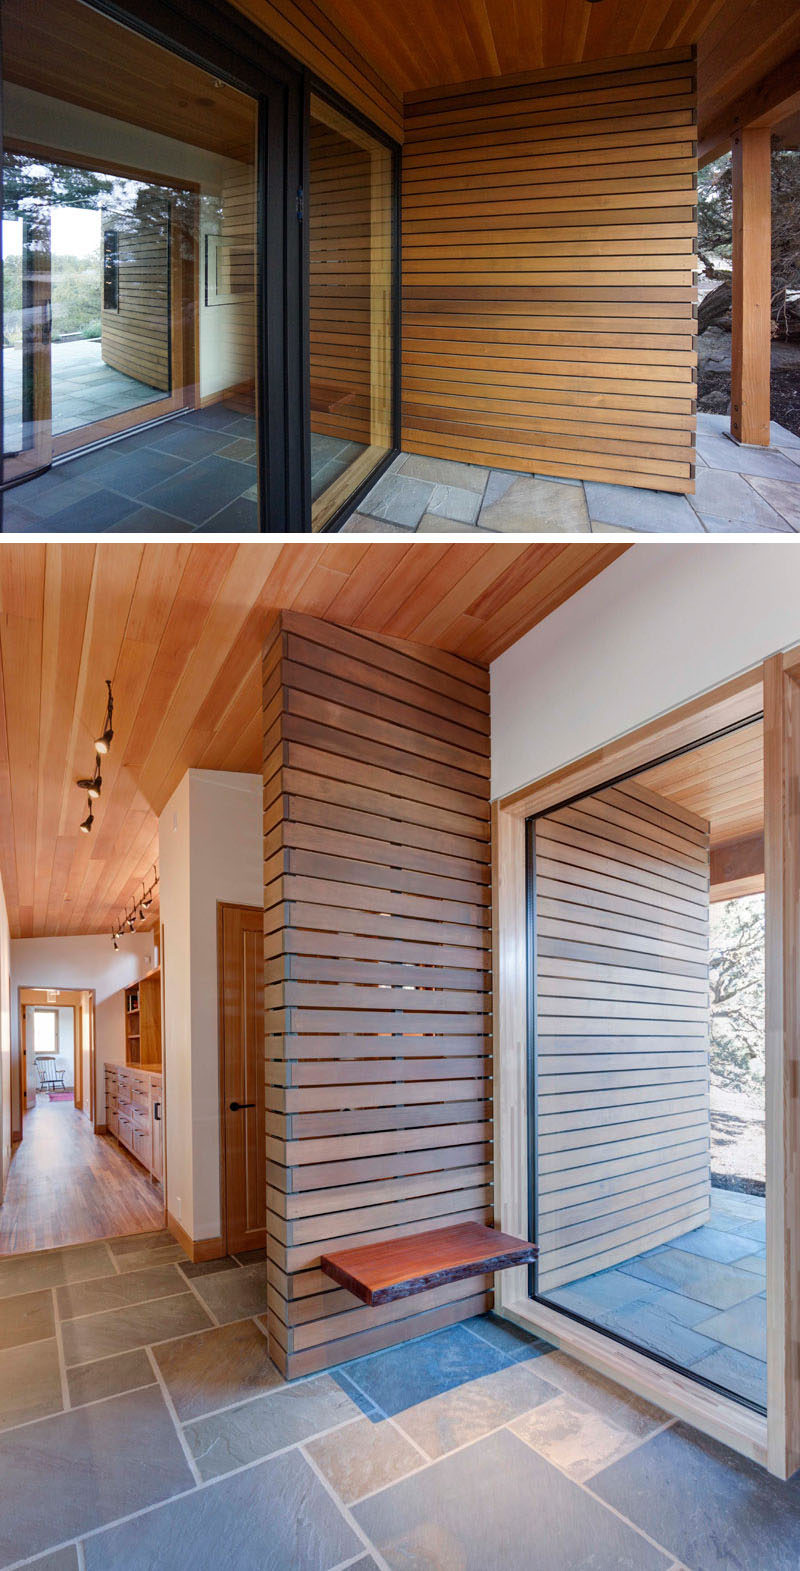 A curved entry wall escorts visitors into this home and widens to an expansive view of the valley beyond.A simple live edge wood slab serves as a bench for removing shoes upon entering the home. #Entryway #FrontDoor #Wood